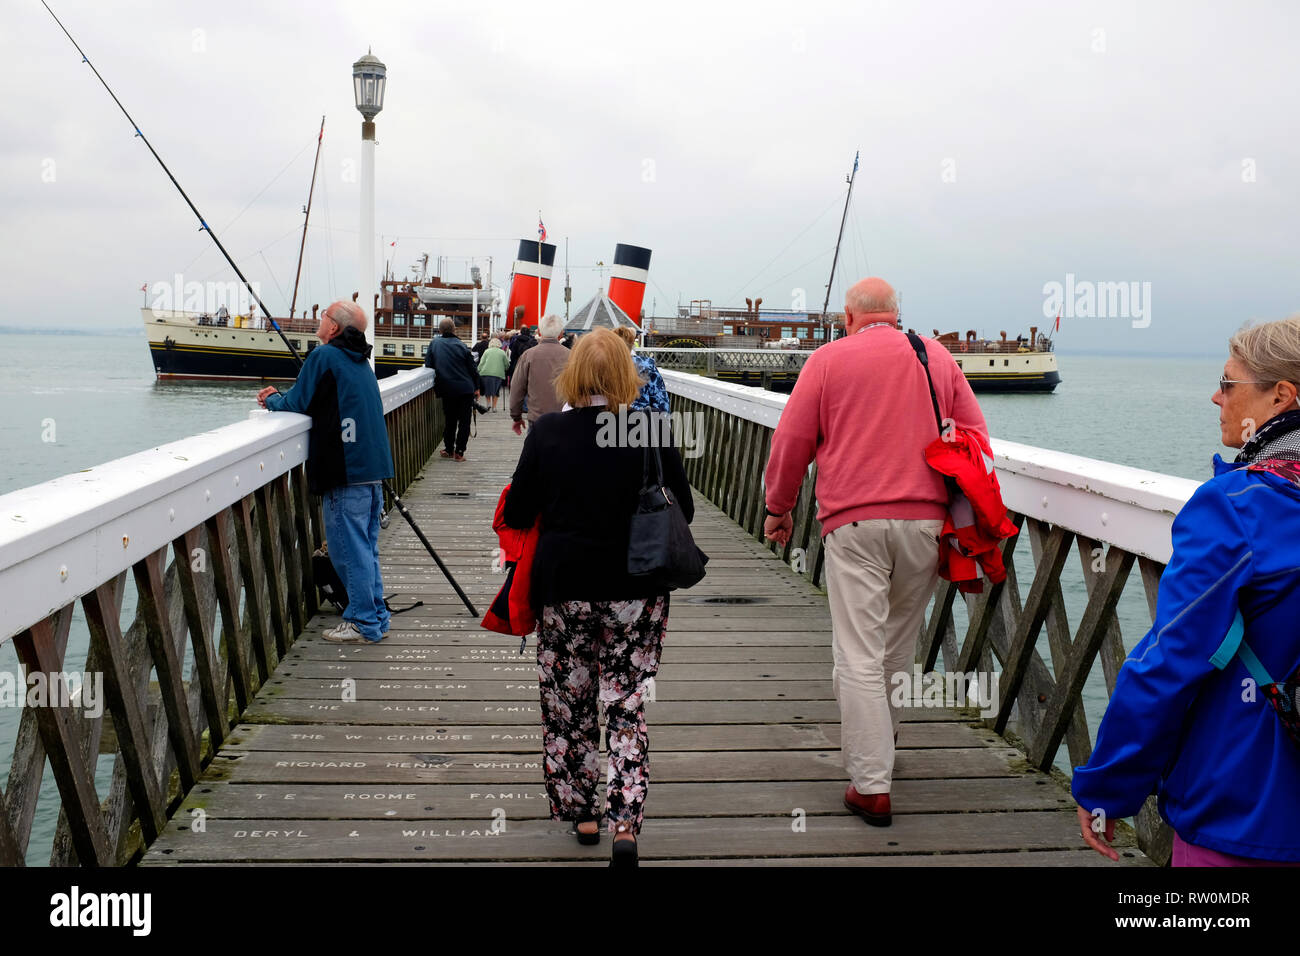 Passengers, alighting, on, fishing, anglers, PS, Waverley, Paddle Steamer, Yarmouth, Pier, Isle of Wight, England,UK, - Stock Image